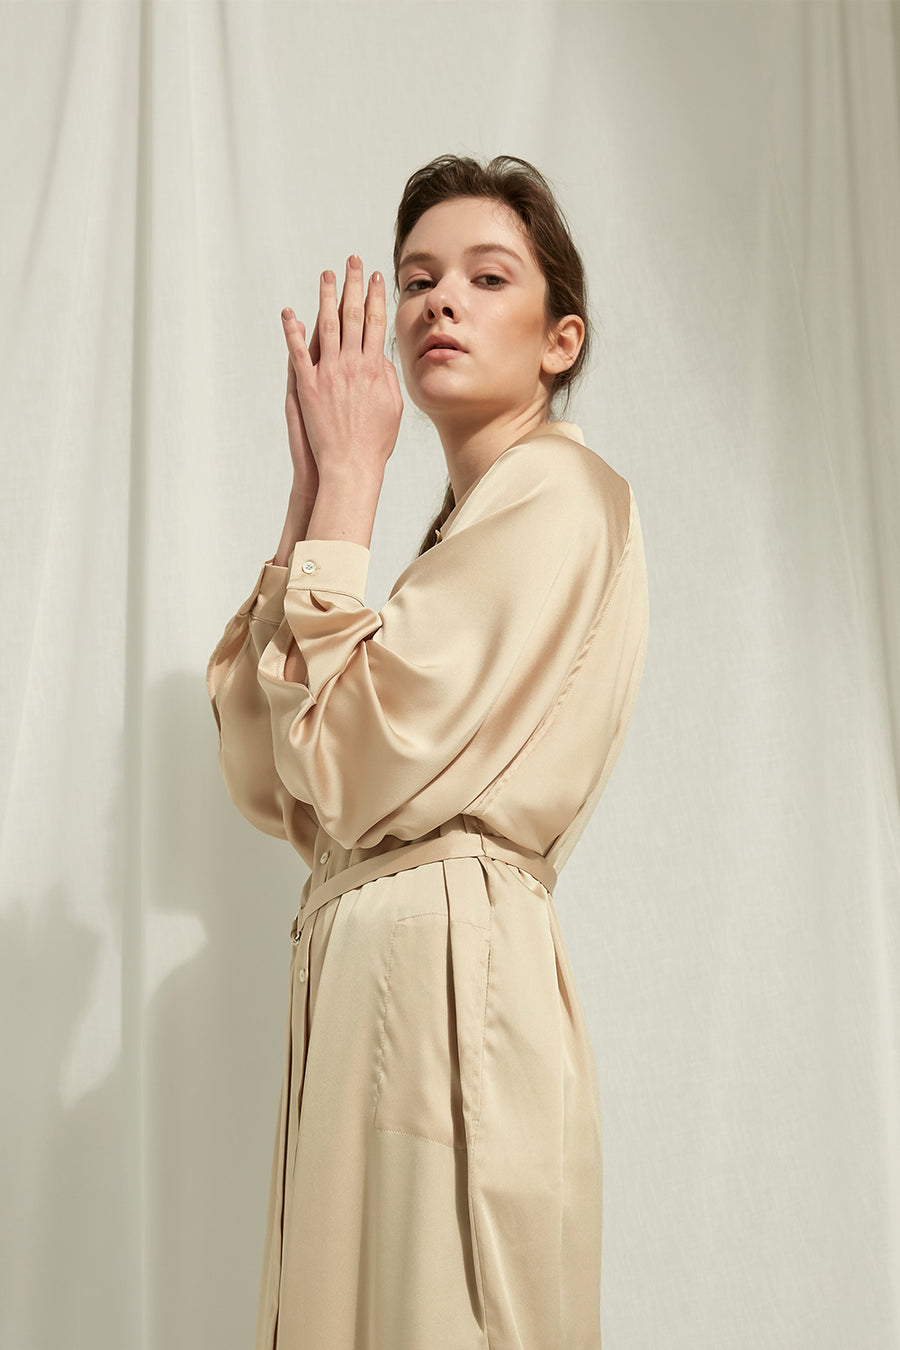 Marcheline - Satin Shirt Dress With Waist Tie - Zelle Studio